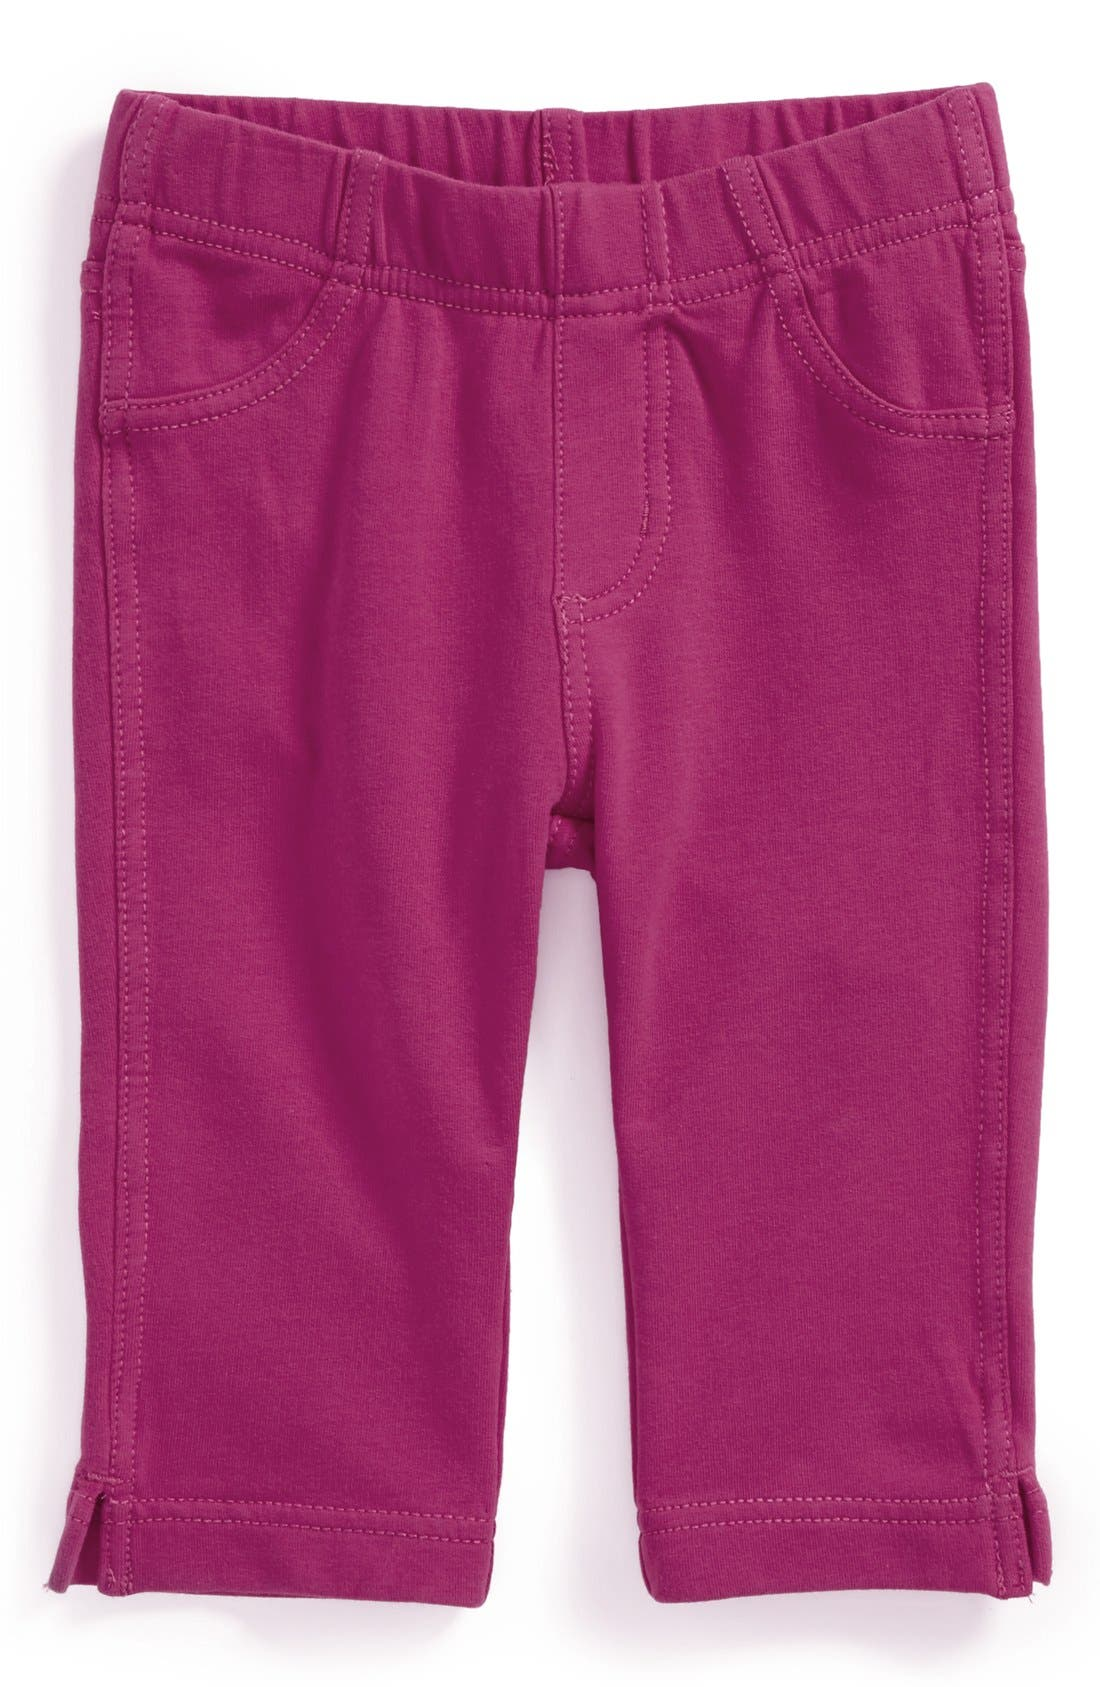 Main Image - Tea Collection 'Pedal Pusher' Skinny Stretch Leggings (Toddler Girls)